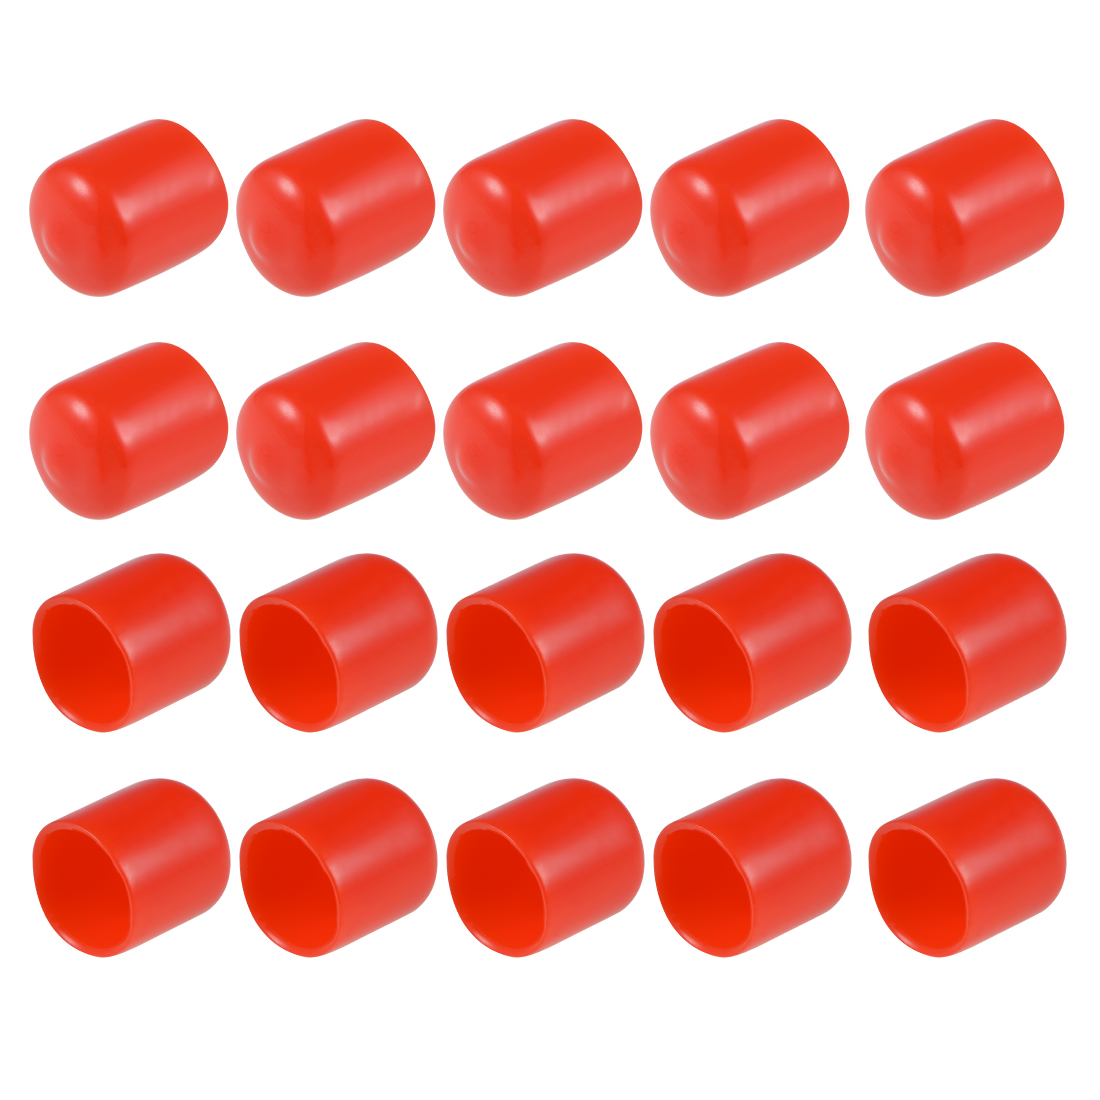 Screw Thread Protectors, 17mm ID 22mm Length Round End Cap Cover Red 20pcs